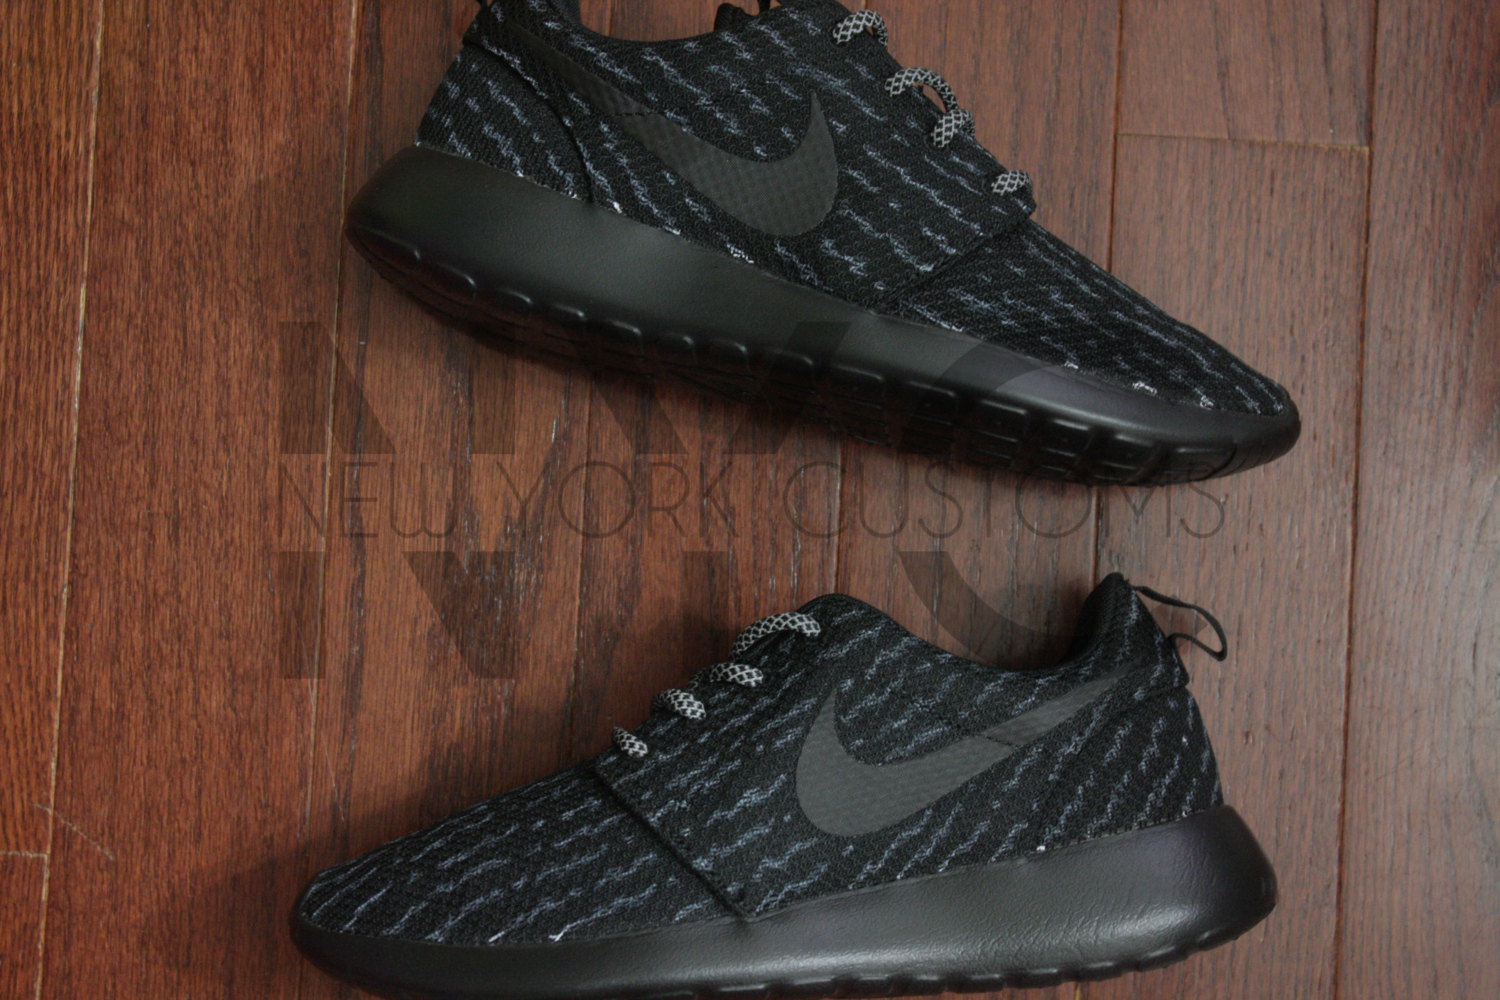 new style c2a0d 54286 where to buy men nike roshe yeezy boost 350 red black dccea ...